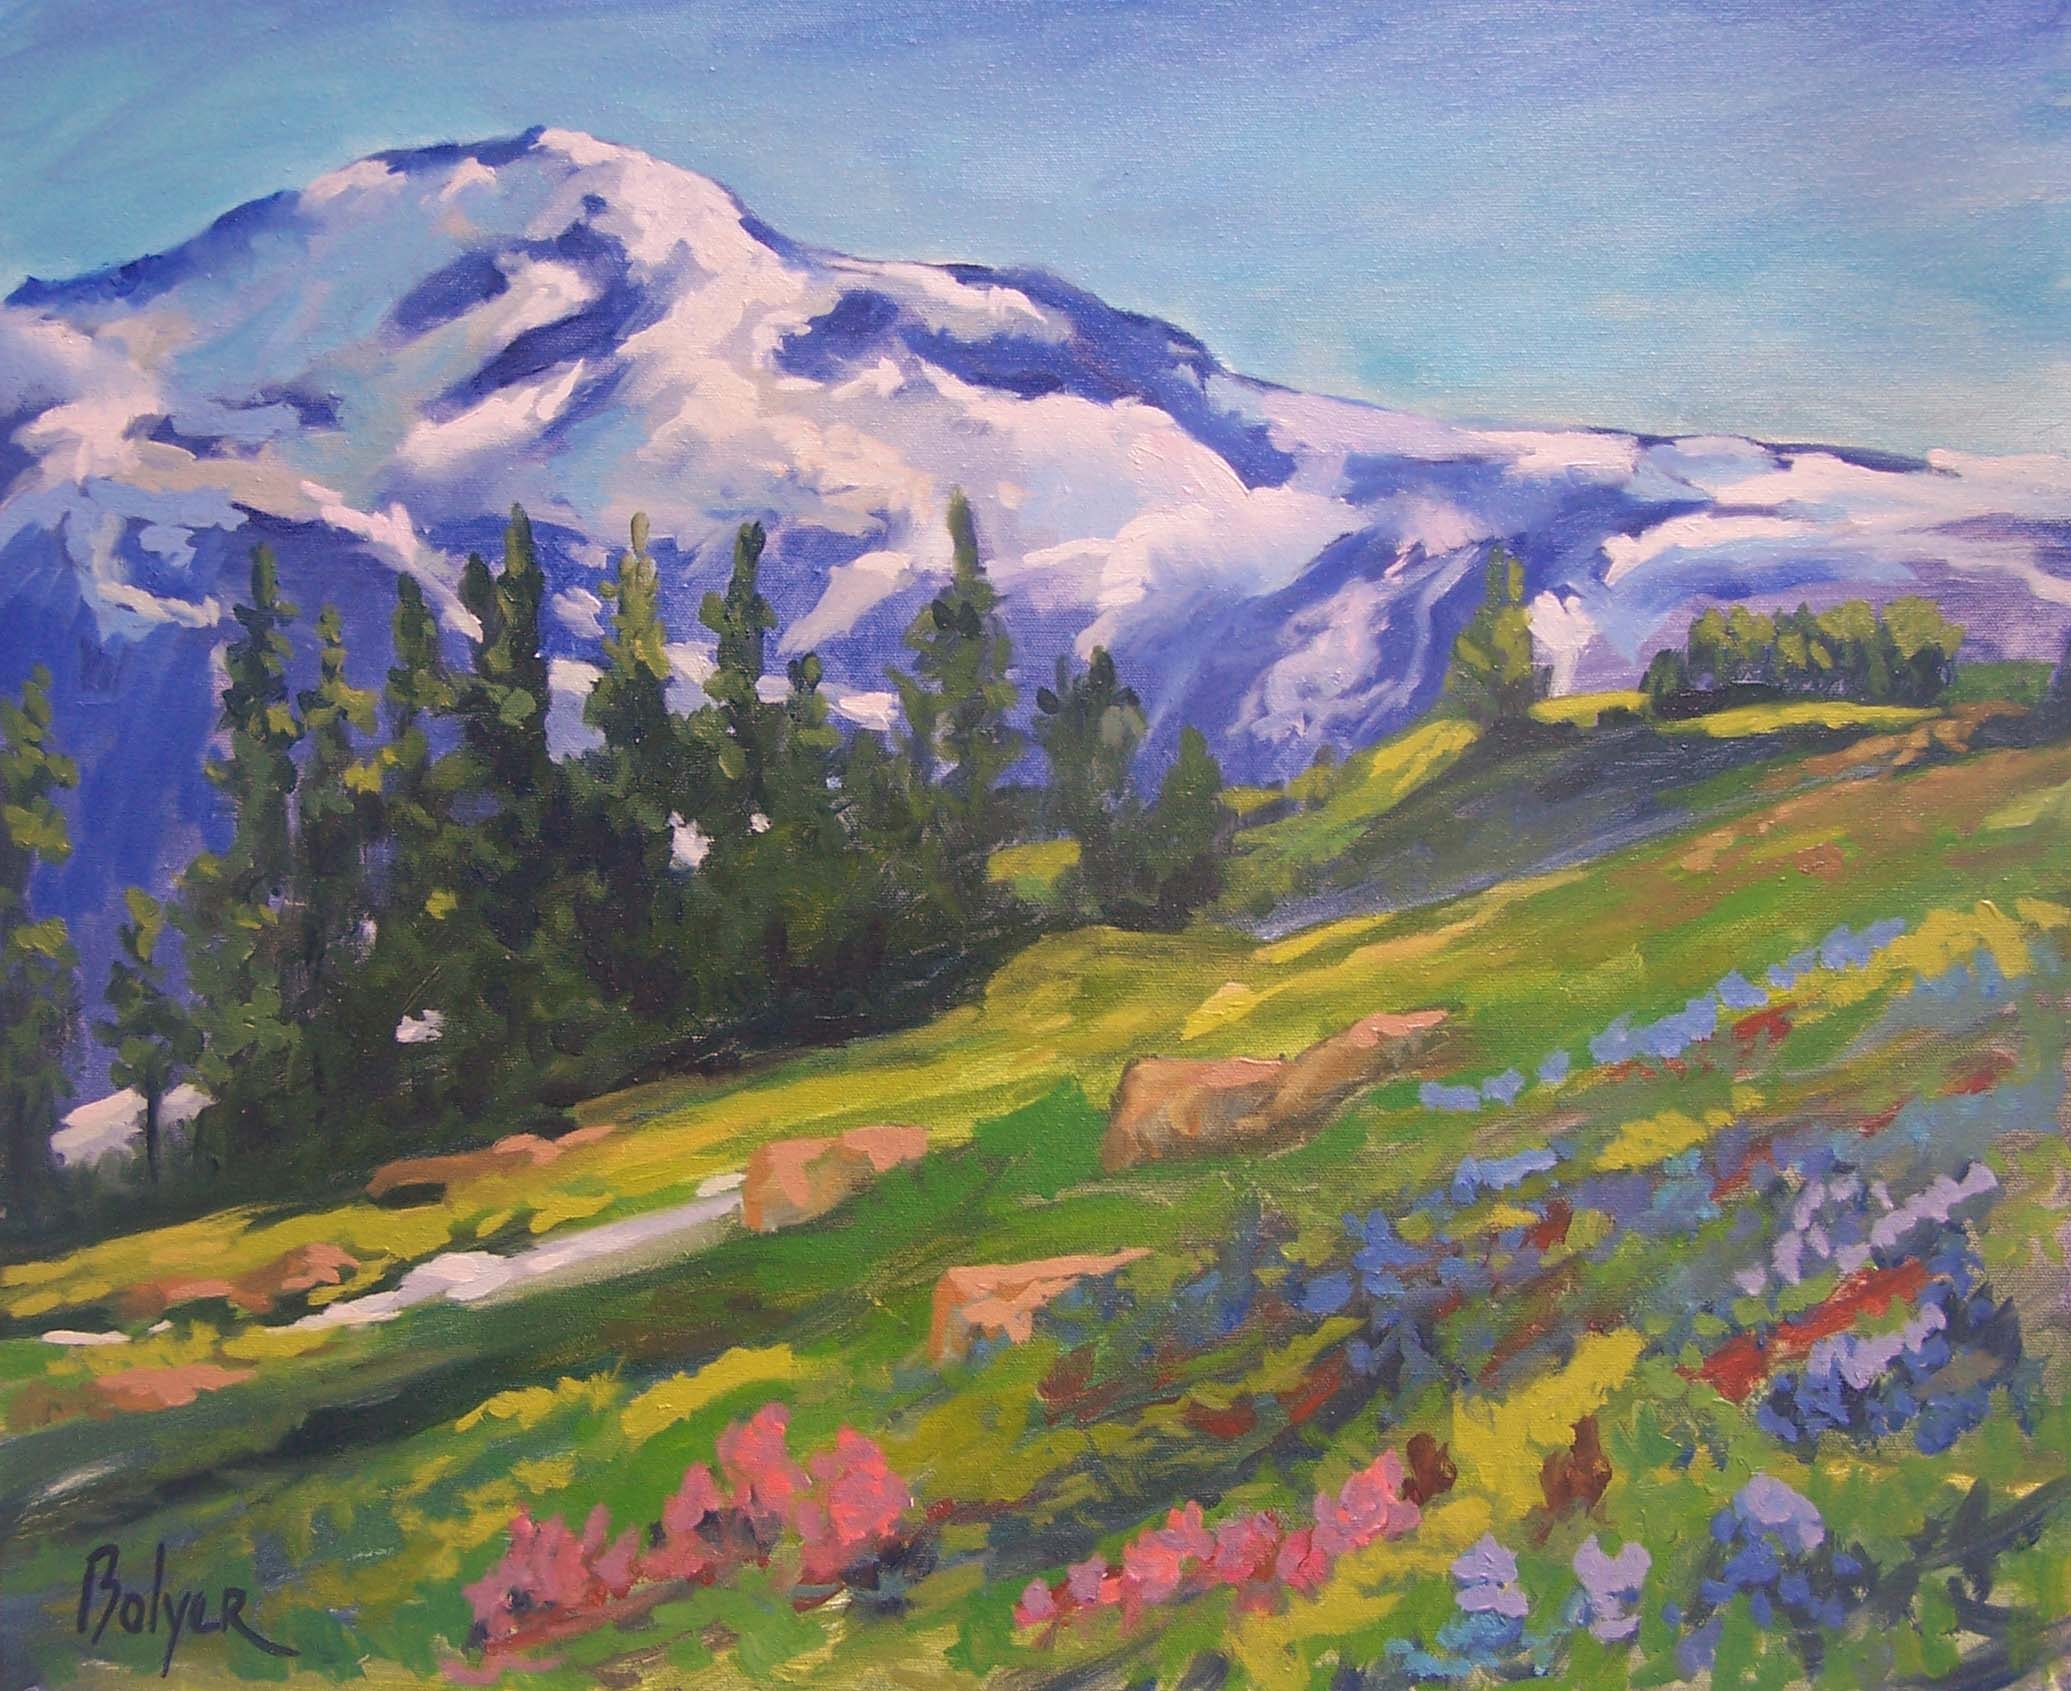 Museum quality giclee art print of Mount Rainier available